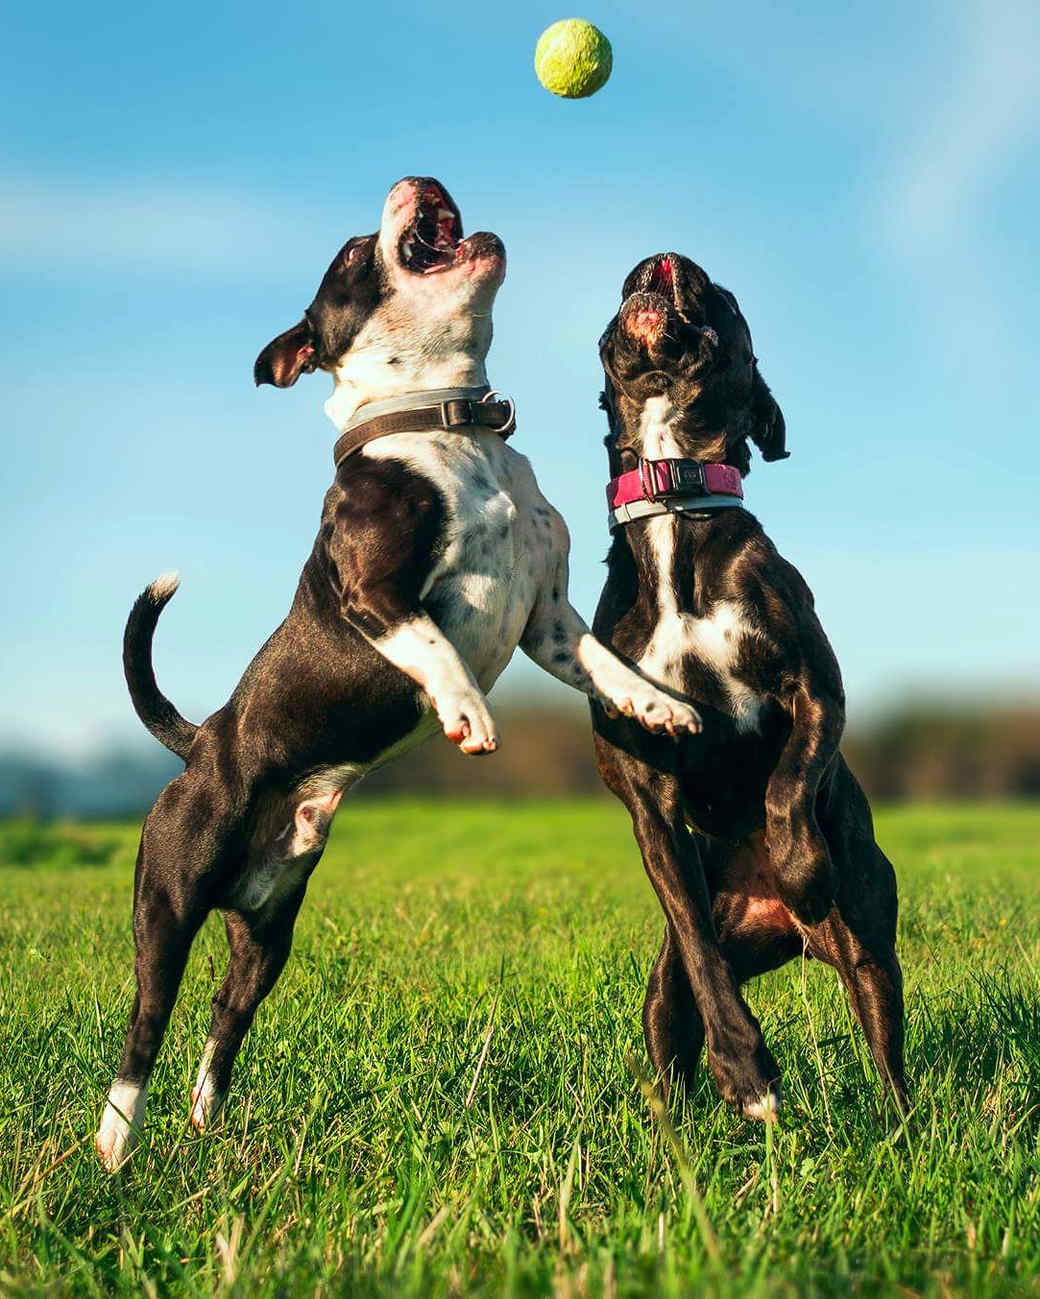 two dogs jumping for tennis ball outside